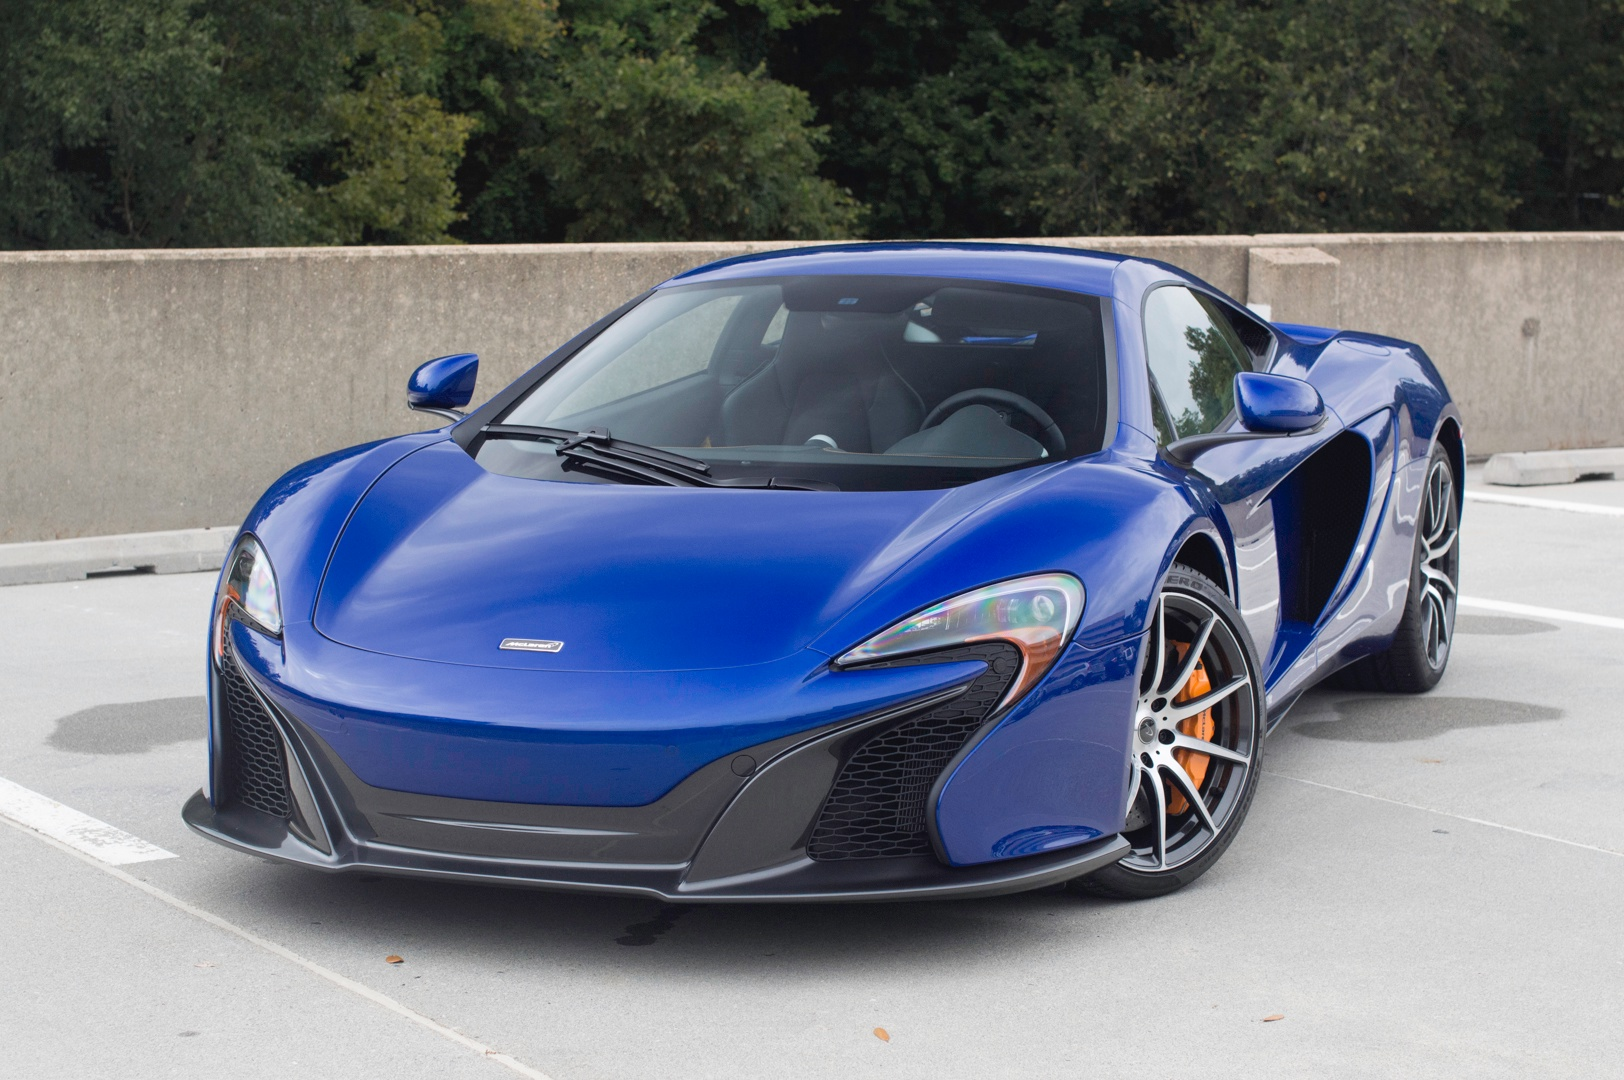 2015 mclaren 650s coupe stock 5w004185 for sale near. Black Bedroom Furniture Sets. Home Design Ideas